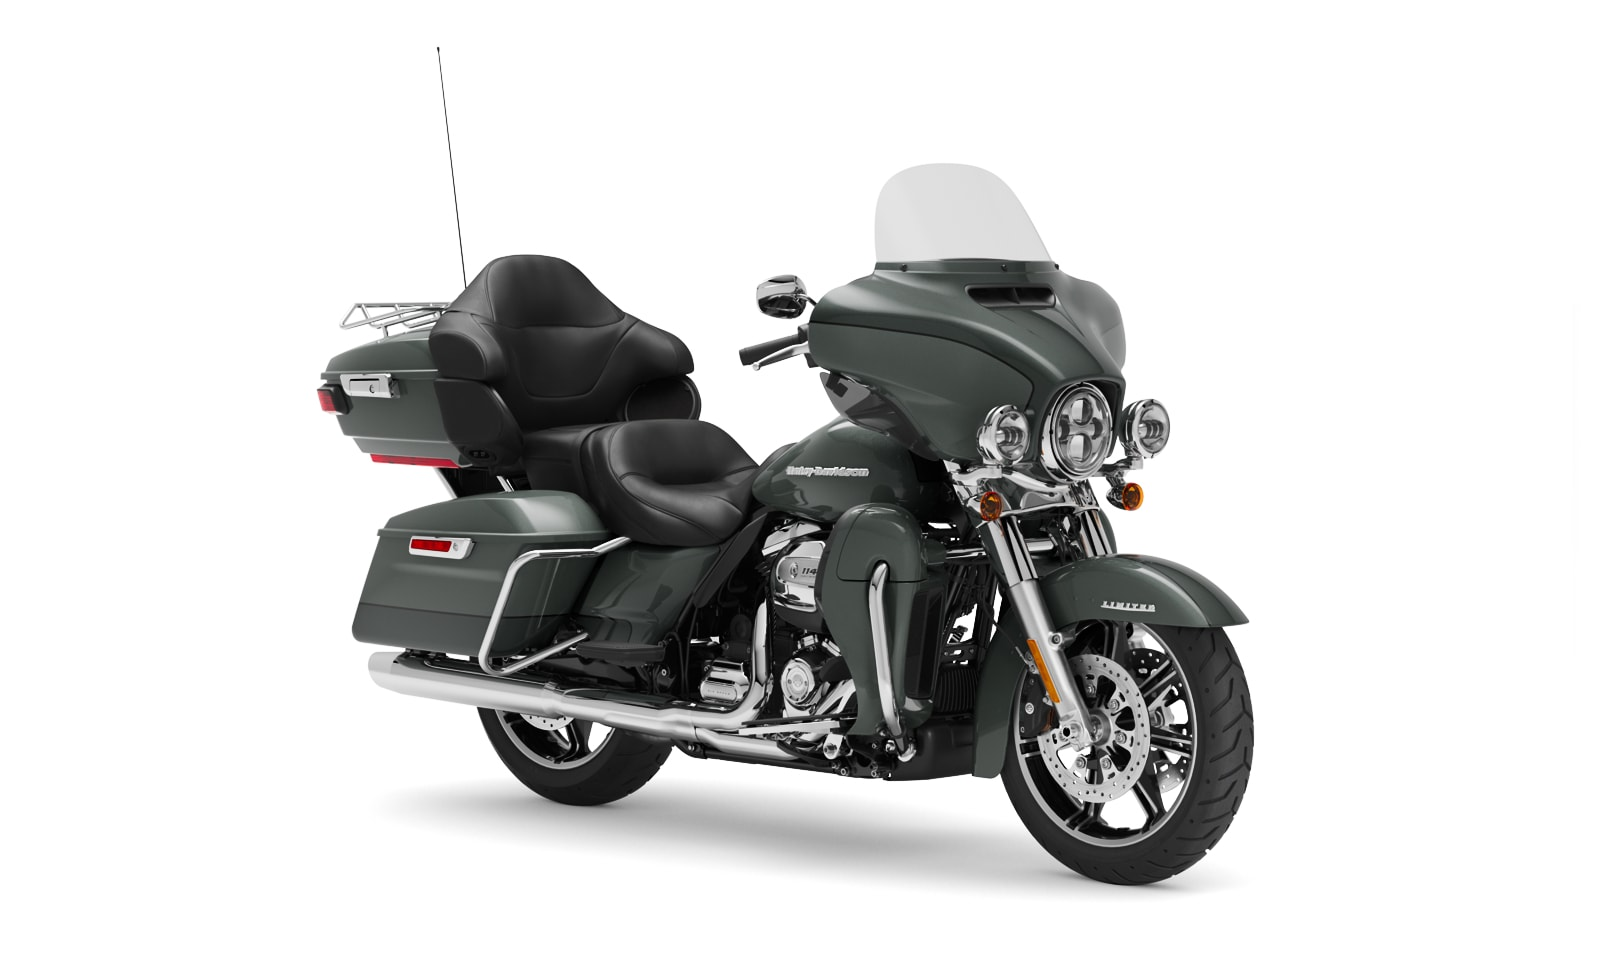 2020 Ultra Limited Motorcycle Harley